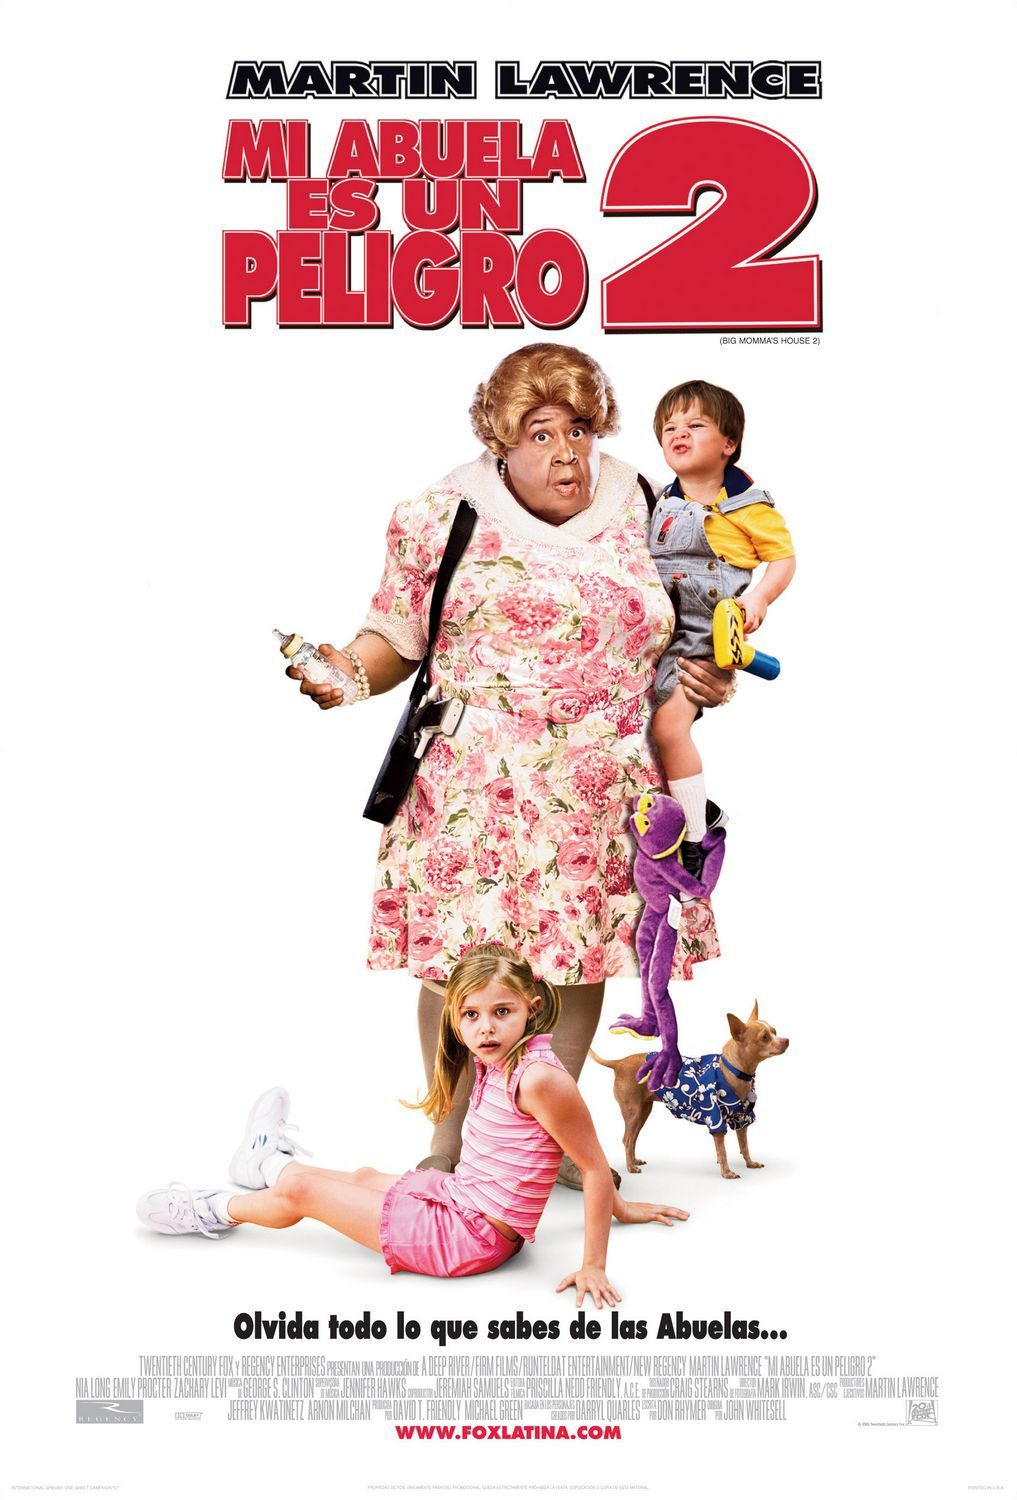 Big Momma S House 2 Starring Martin Lawrence Emily Procter Nia Long Zachary Levi On His Latest As Peliculas Audio Latino Online Peliculas Martin Lawrence